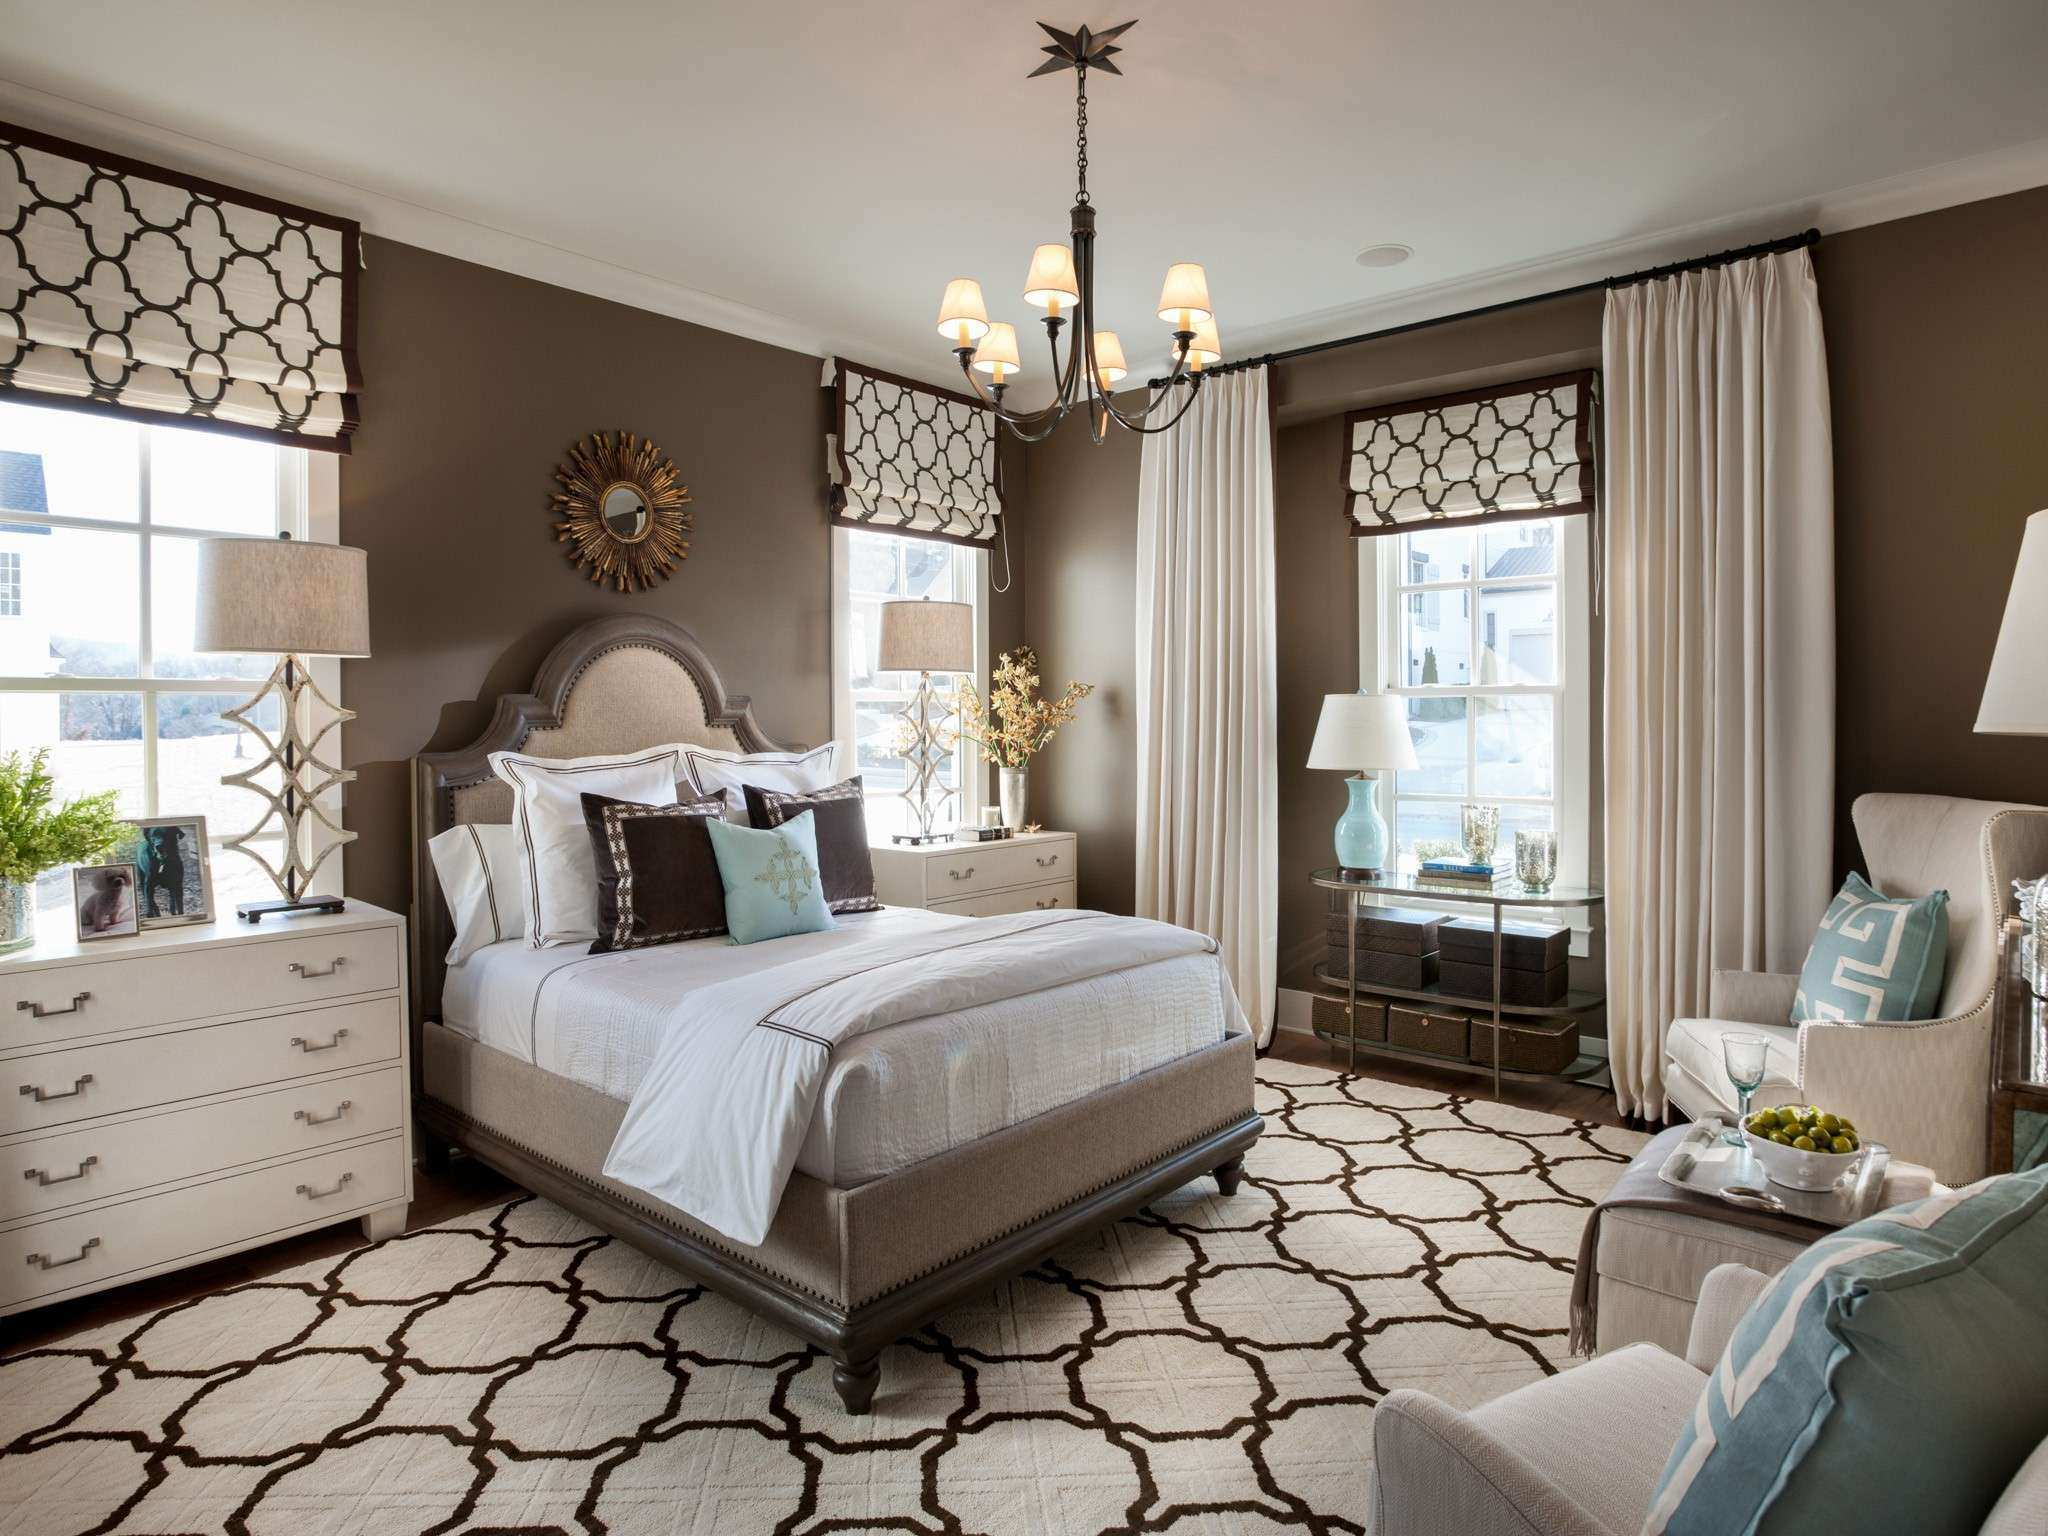 Decorating Chic Design Baby Bedroom With Flower